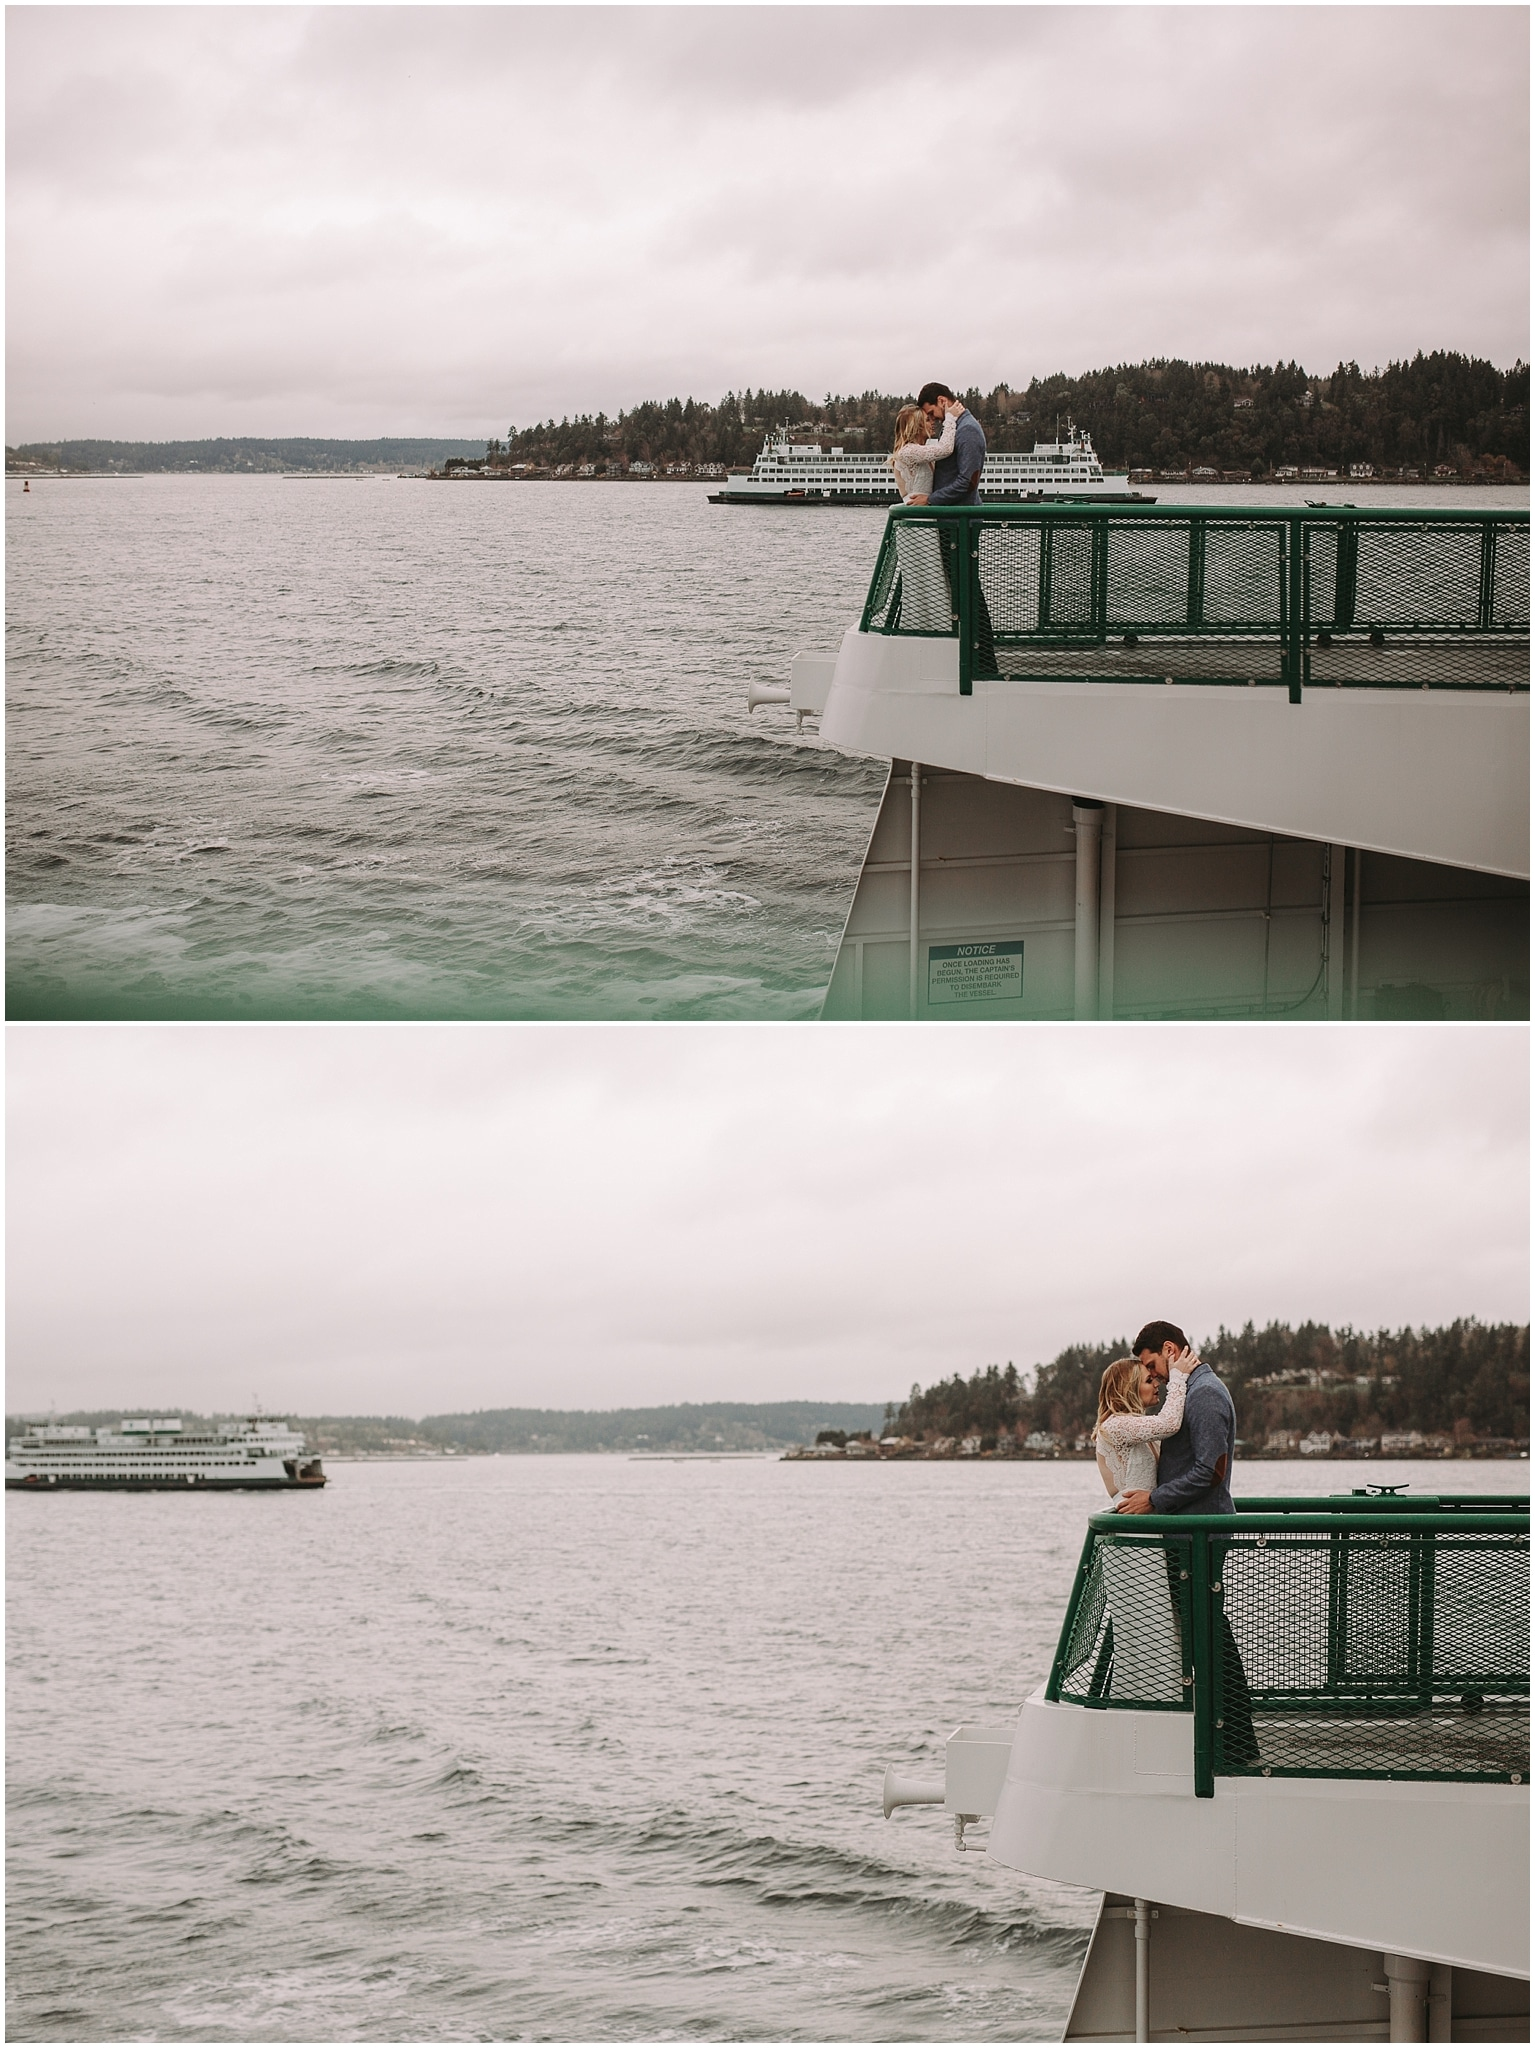 Seattle Washington, Seattle Wedding Photographer, Seattle Elopement Photographer, Seattle wedding ideas, Seattle ferry elopement, Seattle elopement photography, Seattle elopement, Washington Engagement Photographer, Seattle engagement photographer, Best photographers in Washington, Best Washington elopement photographers, Best Washington Wedding photographers, Fun Elopement photo ideas, adventurous Elopement session, adventure elopement photographer, hipster couple engagement photos